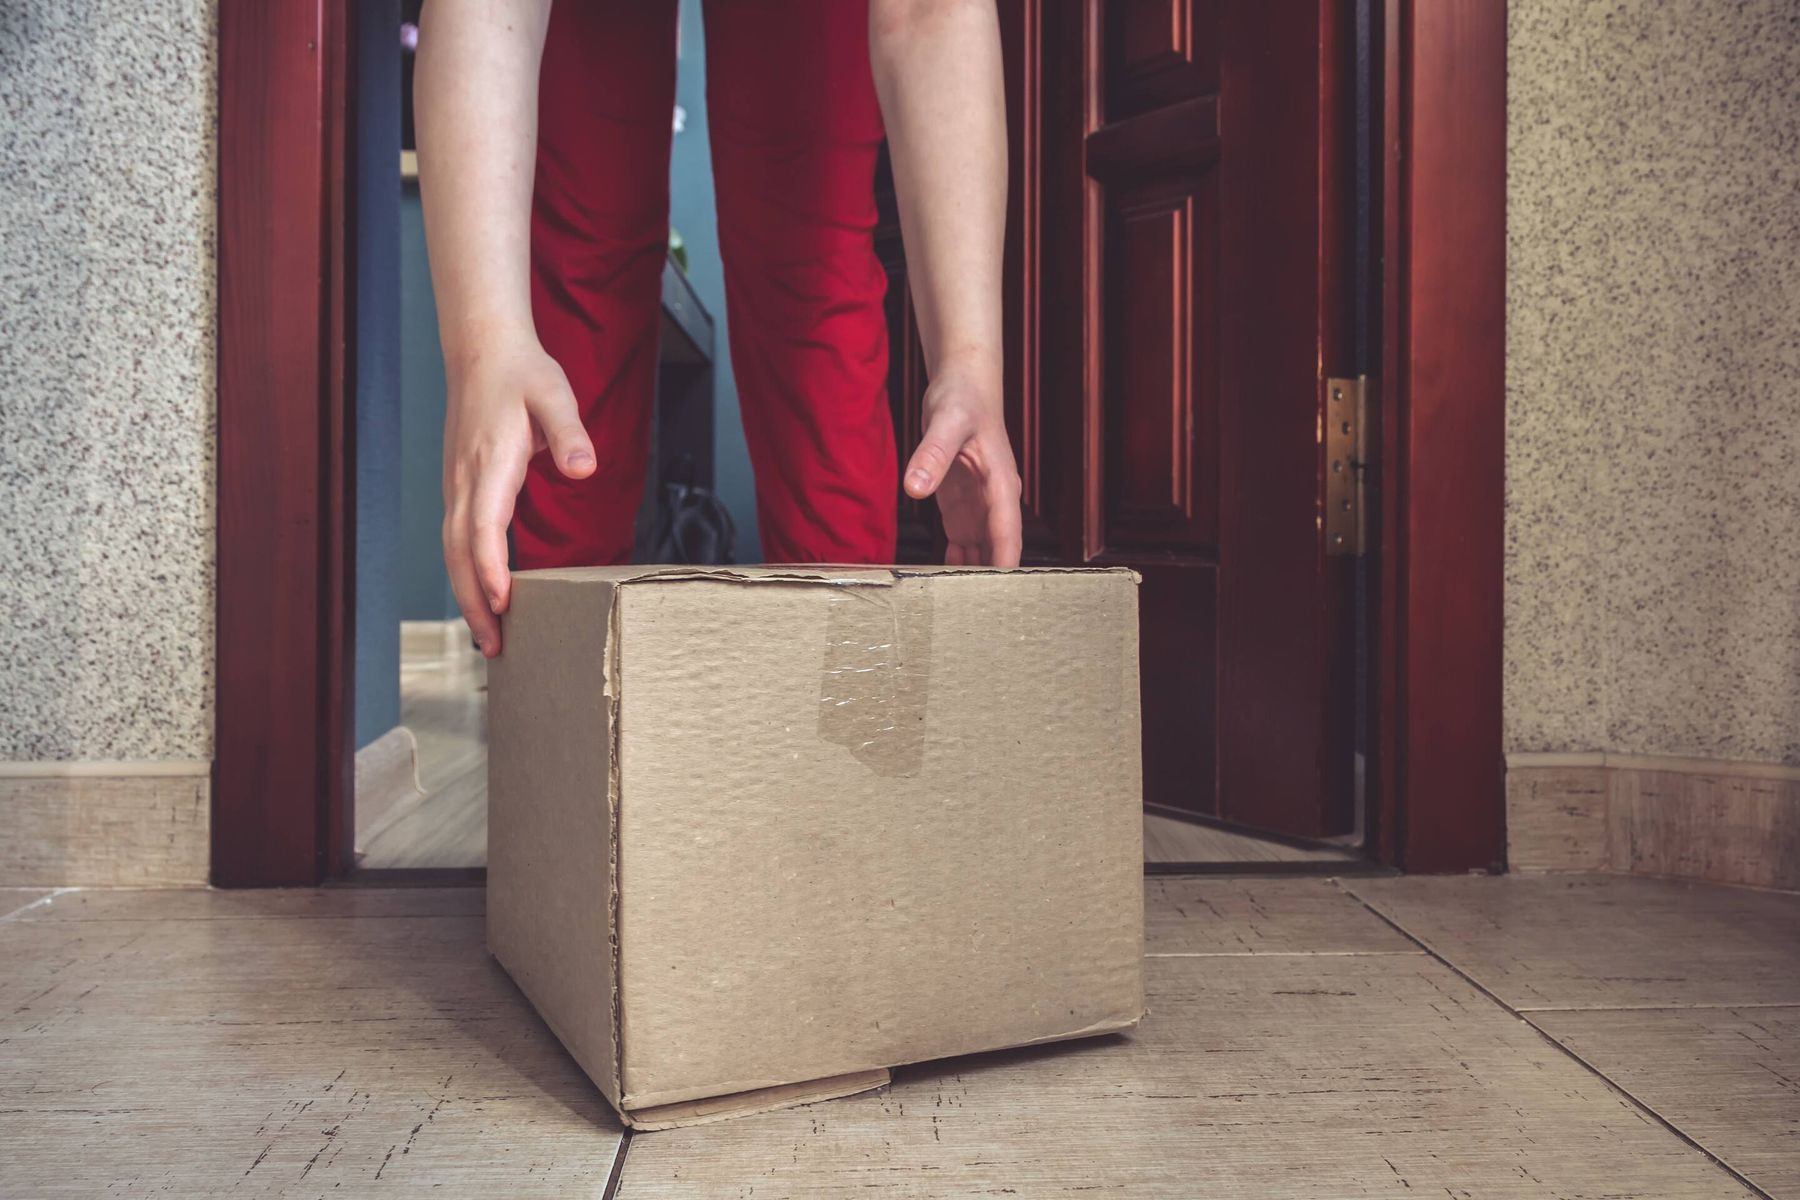 How to Handle Deliveries Packages During the Coronavirus Pandemic | Cleanipedia